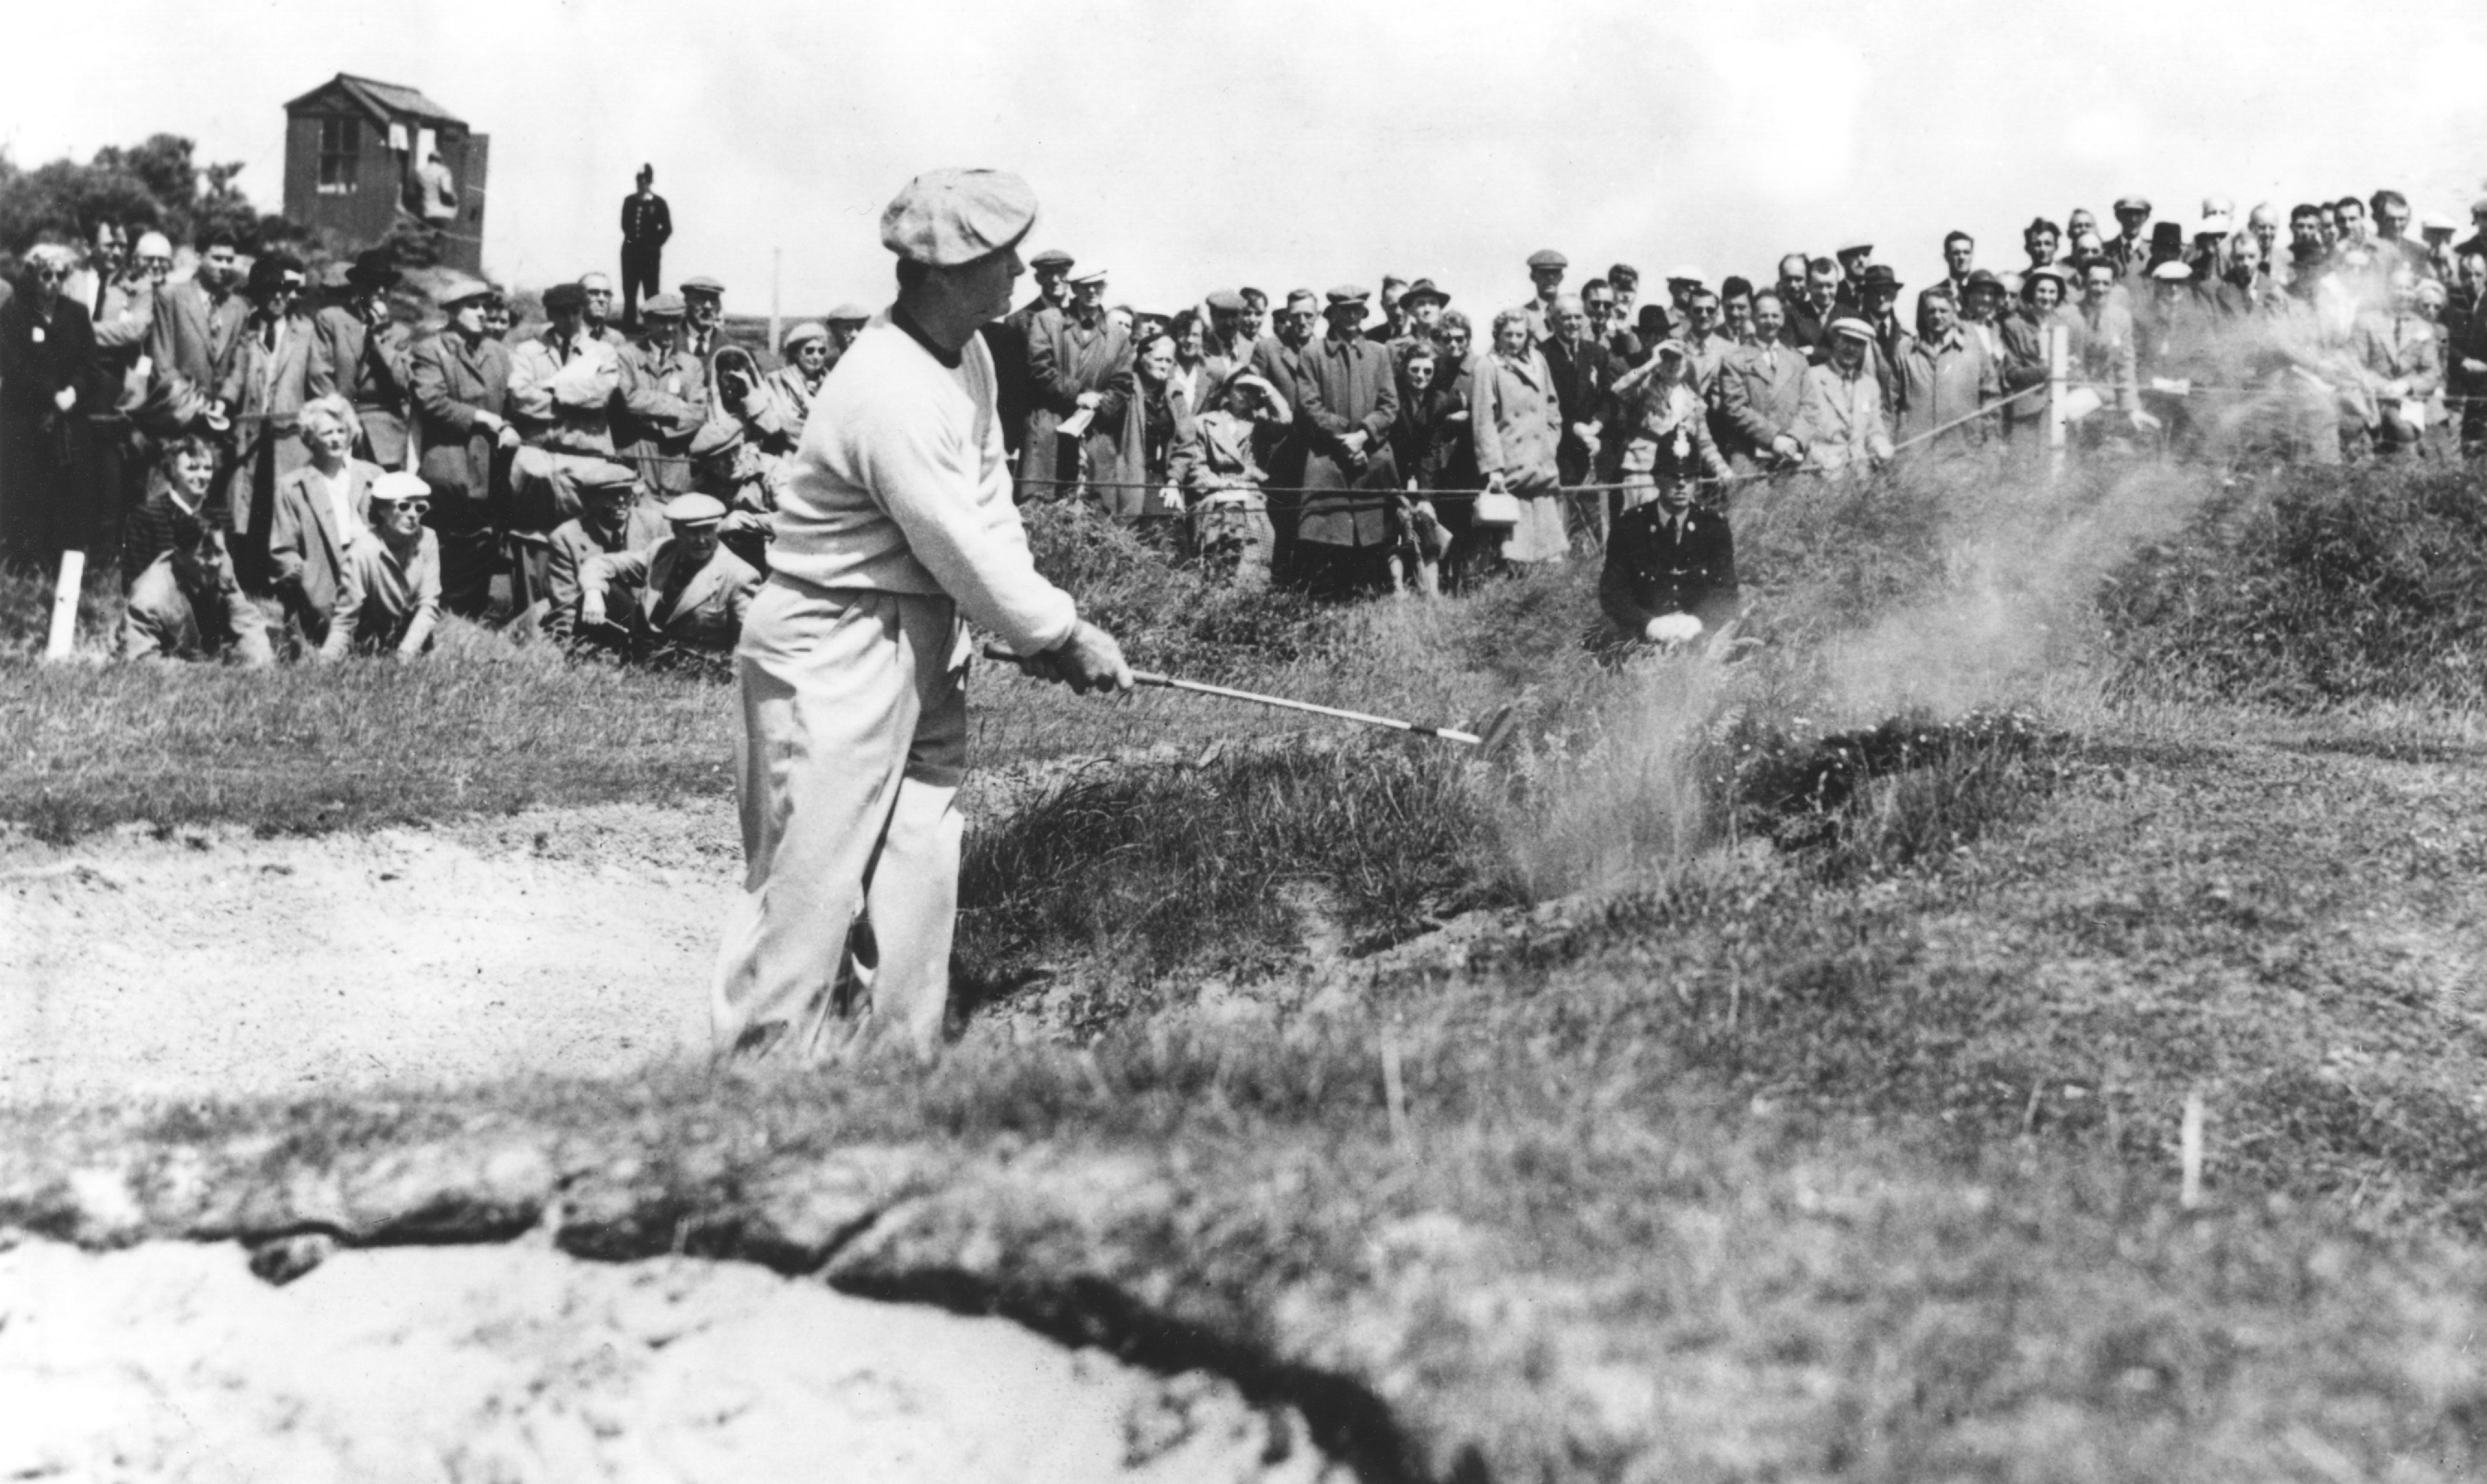 9 JUL 1954:  JIMMY DEMARET OF THE UNITED STATES PLAYS OUT FROM A BUNKER ONTO THE 10TH GREEN ON THE BIRKDALE LINKS DURING THE OPEN GOLF CHAMPIONSHIPS AT SOUTHEND. Mandatory Credit: Allsport Hulton/Archive